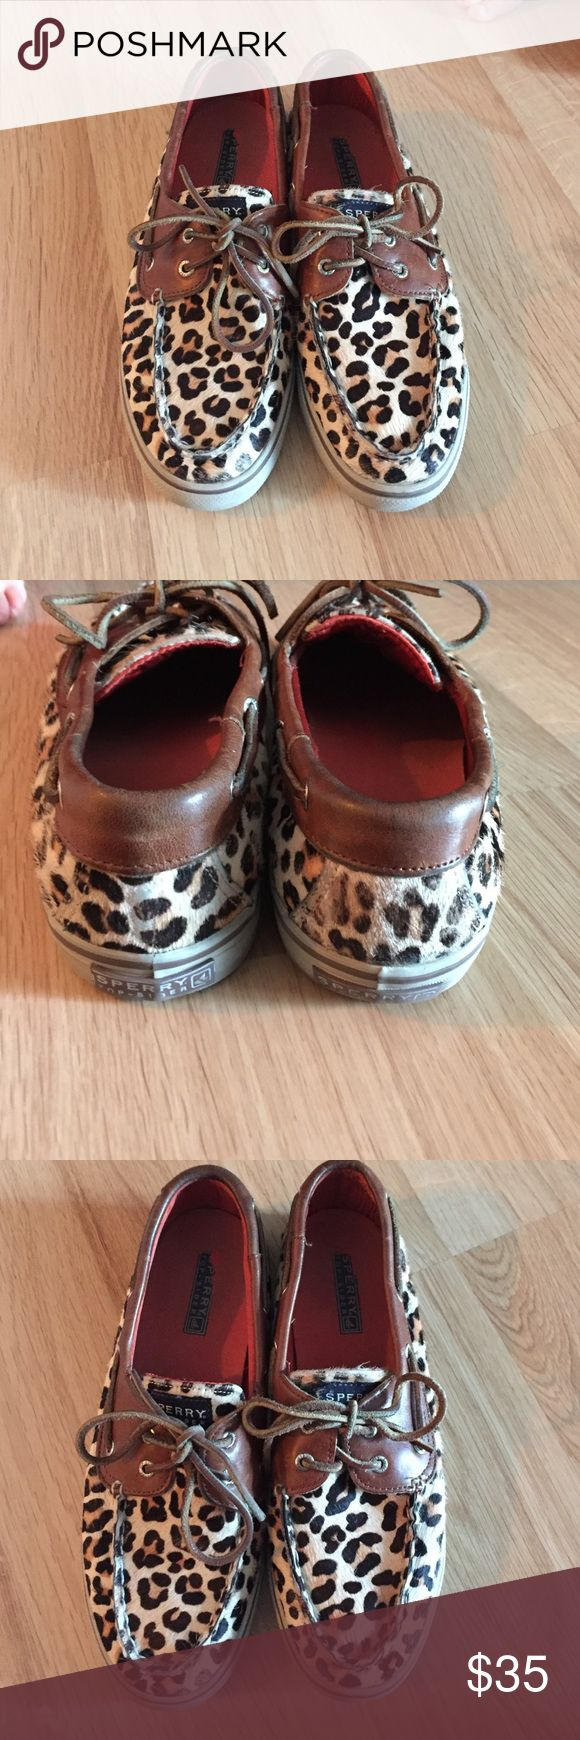 Sperry top sider leopard print shoes women's 9 One day sale!!!! Preowned Sperry top siders in leopard print size 9. See pics for condition. Price is firm. Sperry Top-Sider Shoes Flats & Loafers